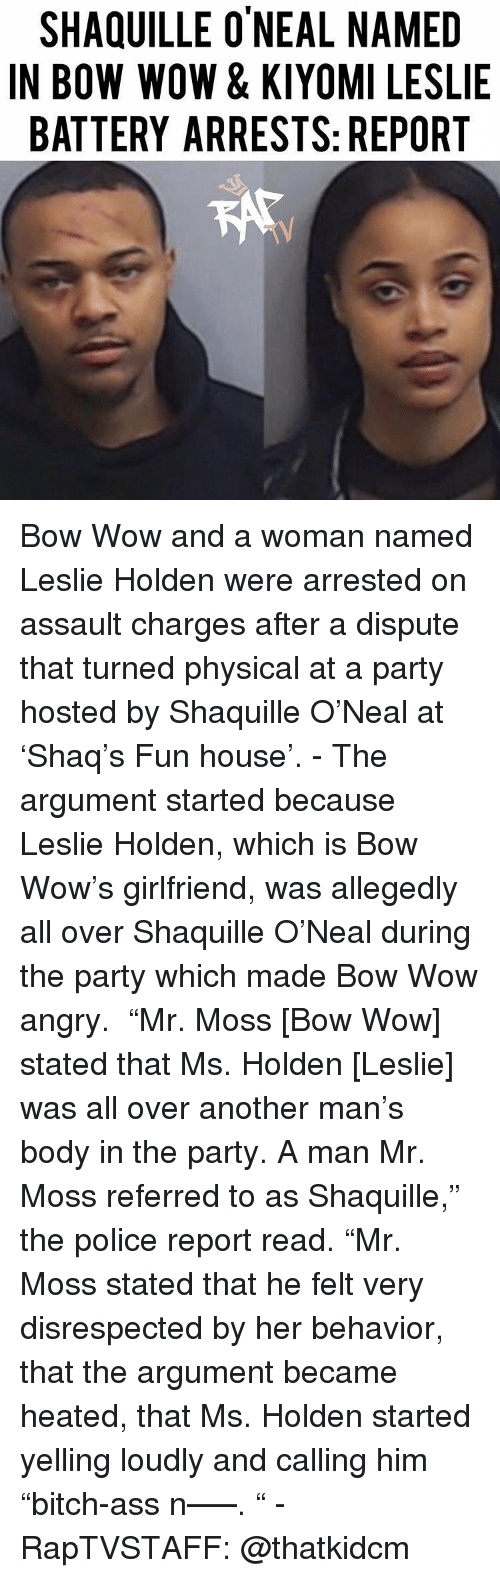 "Heated: SHAQUILLE O'NEAL NAMED  IN BOW WOW & KIYOMI LESLIE  BATTERY ARRESTS: REPORT Bow Wow and a woman named Leslie Holden were arrested on assault charges after a dispute that turned physical at a party hosted by Shaquille O'Neal at 'Shaq's Fun house'.⁣⁣ -⁣⁣ The argument started because Leslie Holden, which is Bow Wow's girlfriend, was allegedly all over Shaquille O'Neal during the party which made Bow Wow angry.⁣⁣ ⁣⁣ ""Mr. Moss [Bow Wow] stated that Ms. Holden [Leslie] was all over another man's body in the party. A man Mr. Moss referred to as Shaquille,"" the police report read. ""Mr. Moss stated that he felt very disrespected by her behavior, that the argument became heated, that Ms. Holden started yelling loudly and calling him ""bitch-ass n—–. ""⁣⁣ -⁣⁣ RapTVSTAFF: @thatkidcm"